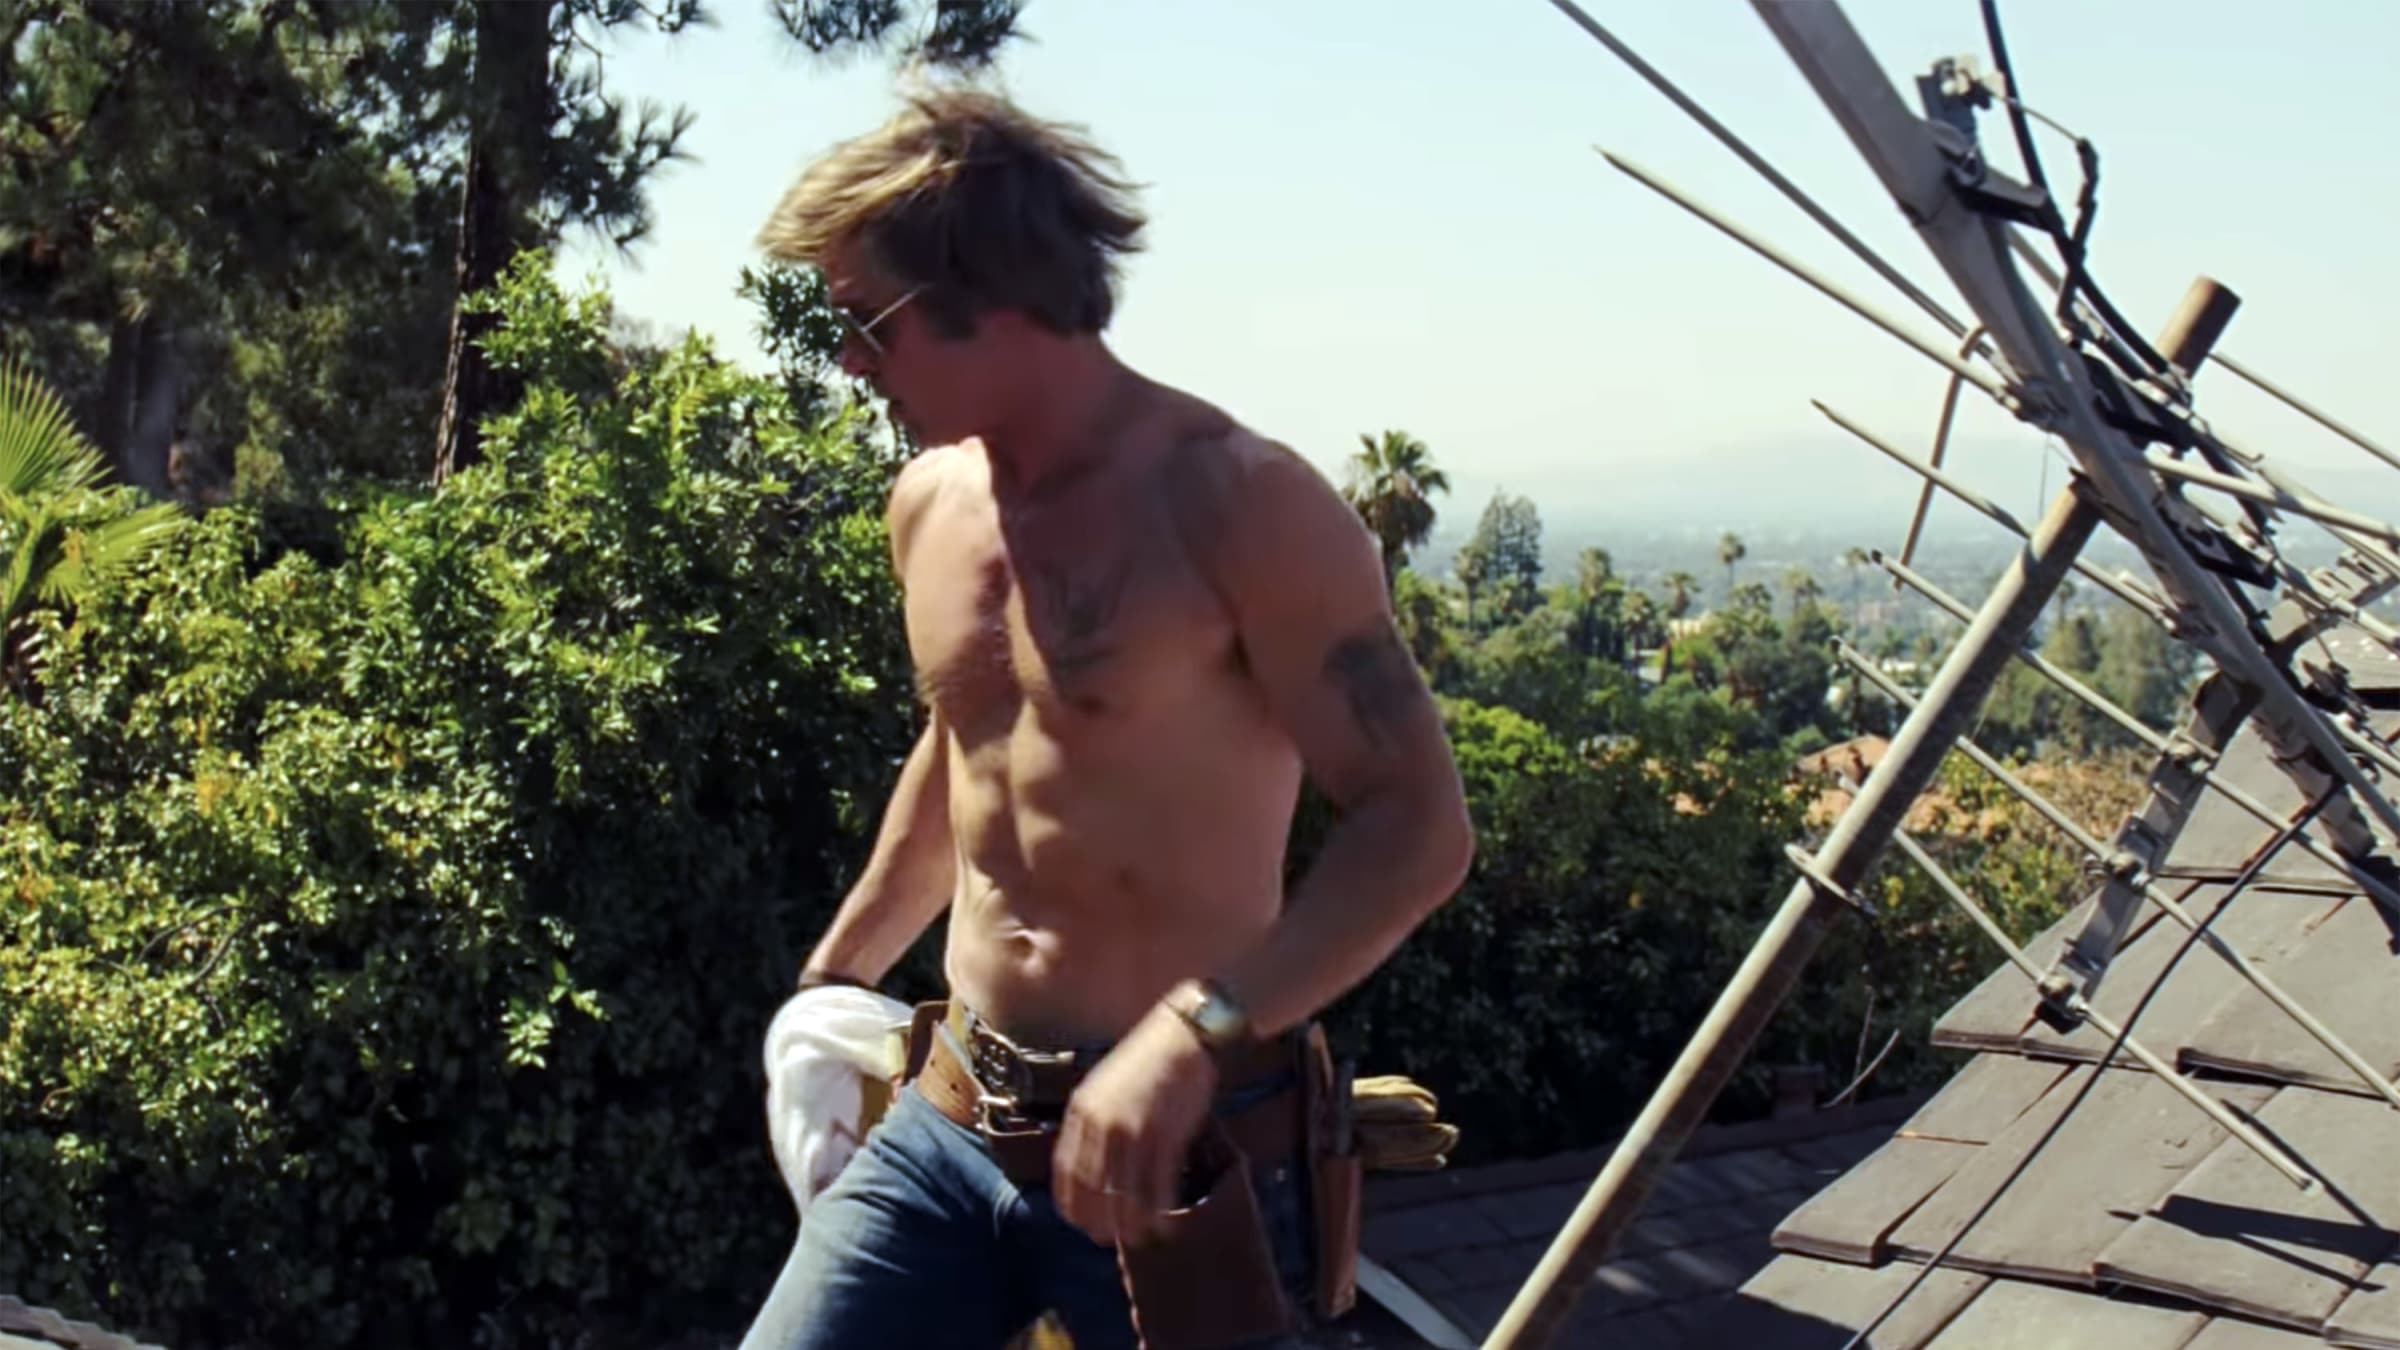 Brad Pitt Is This Summer's Reigning King of the Shirtless Movie Scene